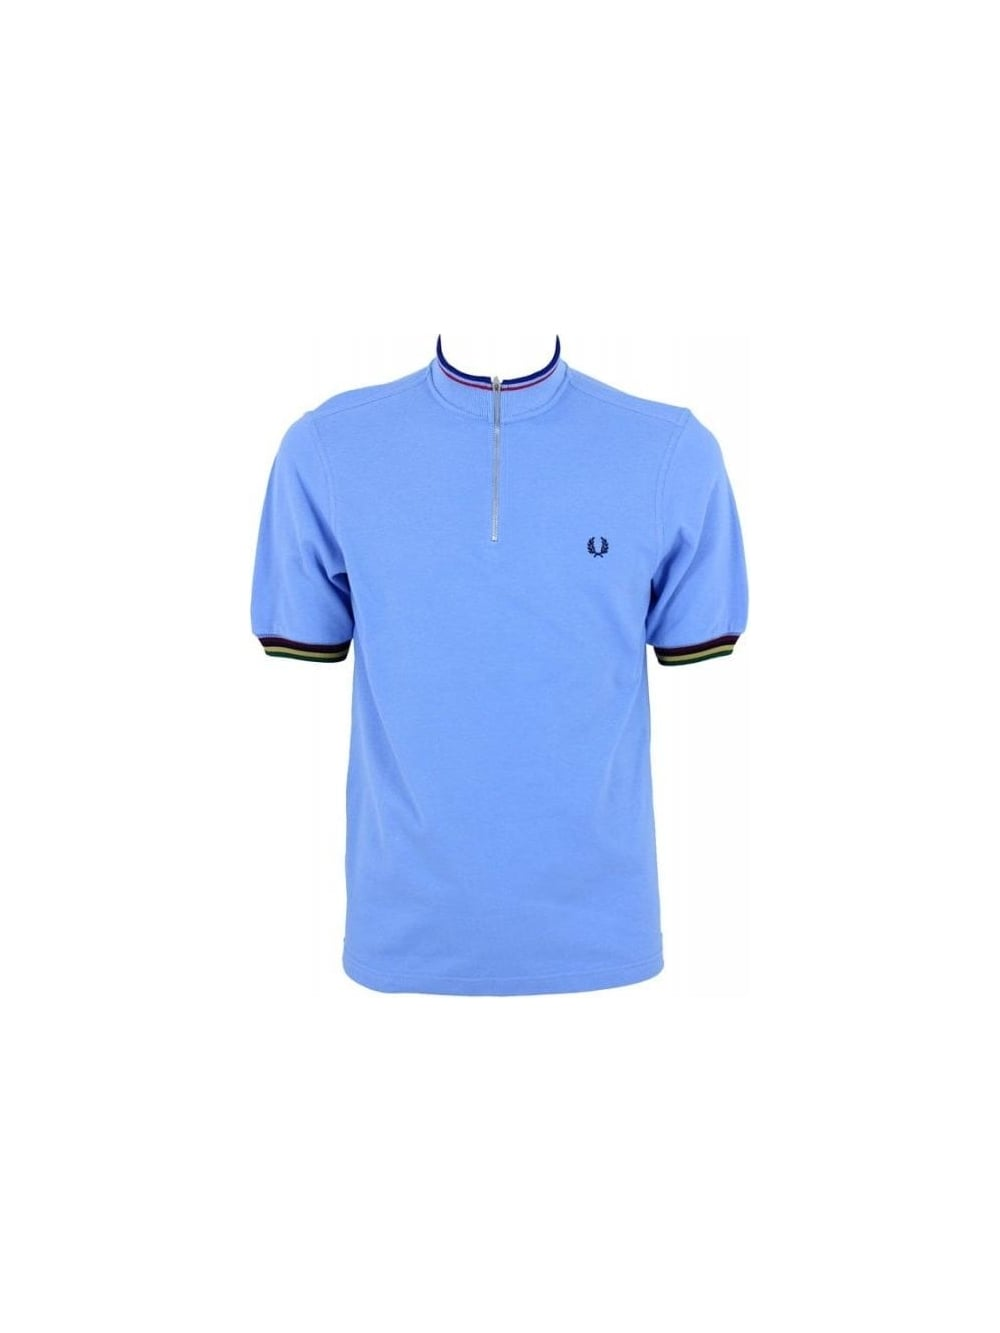 Fred Perry Bradley Wiggins Cycling Shirt in Utility Blue - Northern ... d683109ad